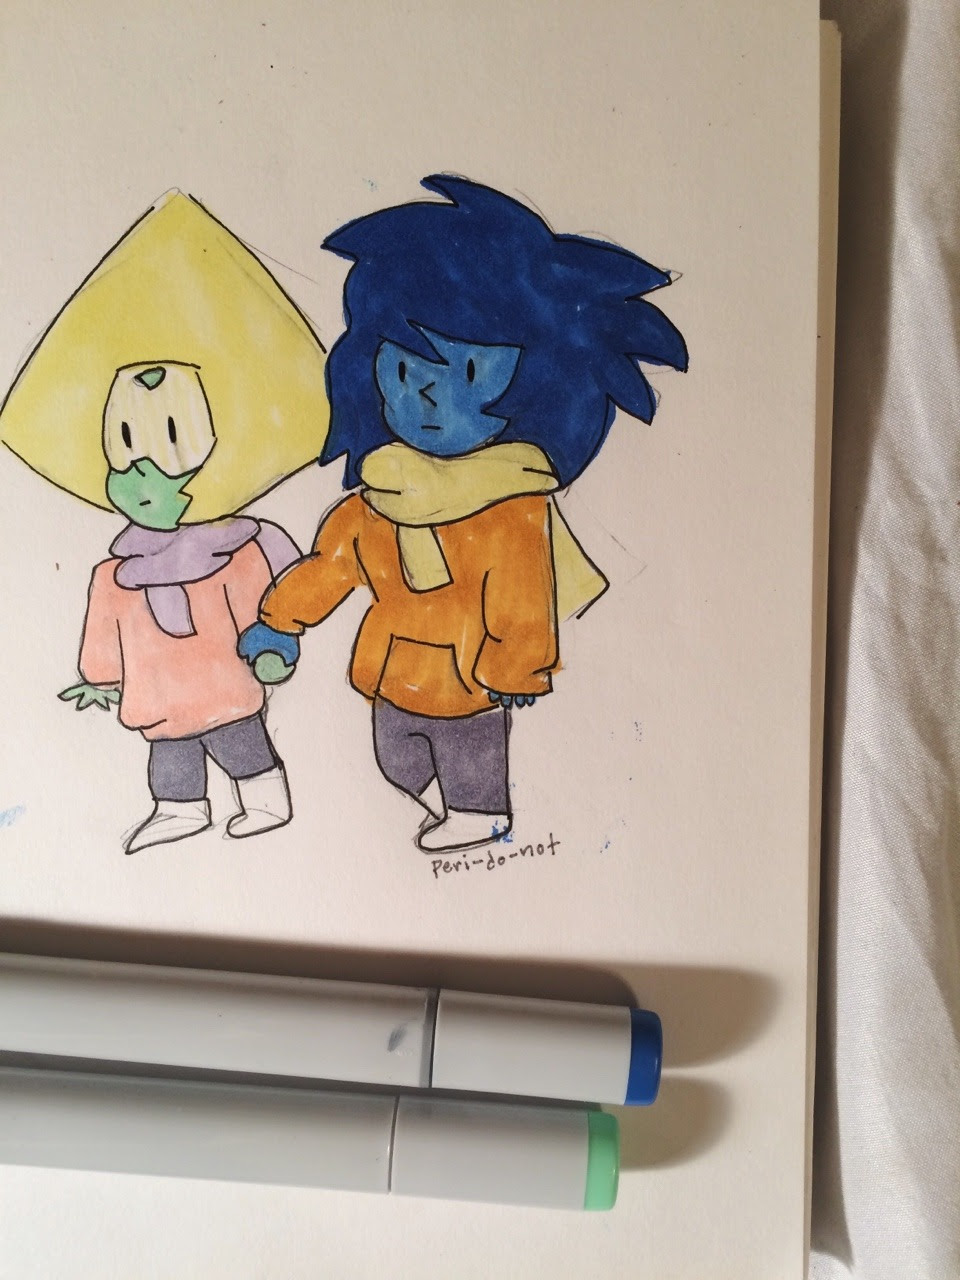 my version of @j-aspidot's cute little doodle of jaspidot but with lapidot! ✨💚